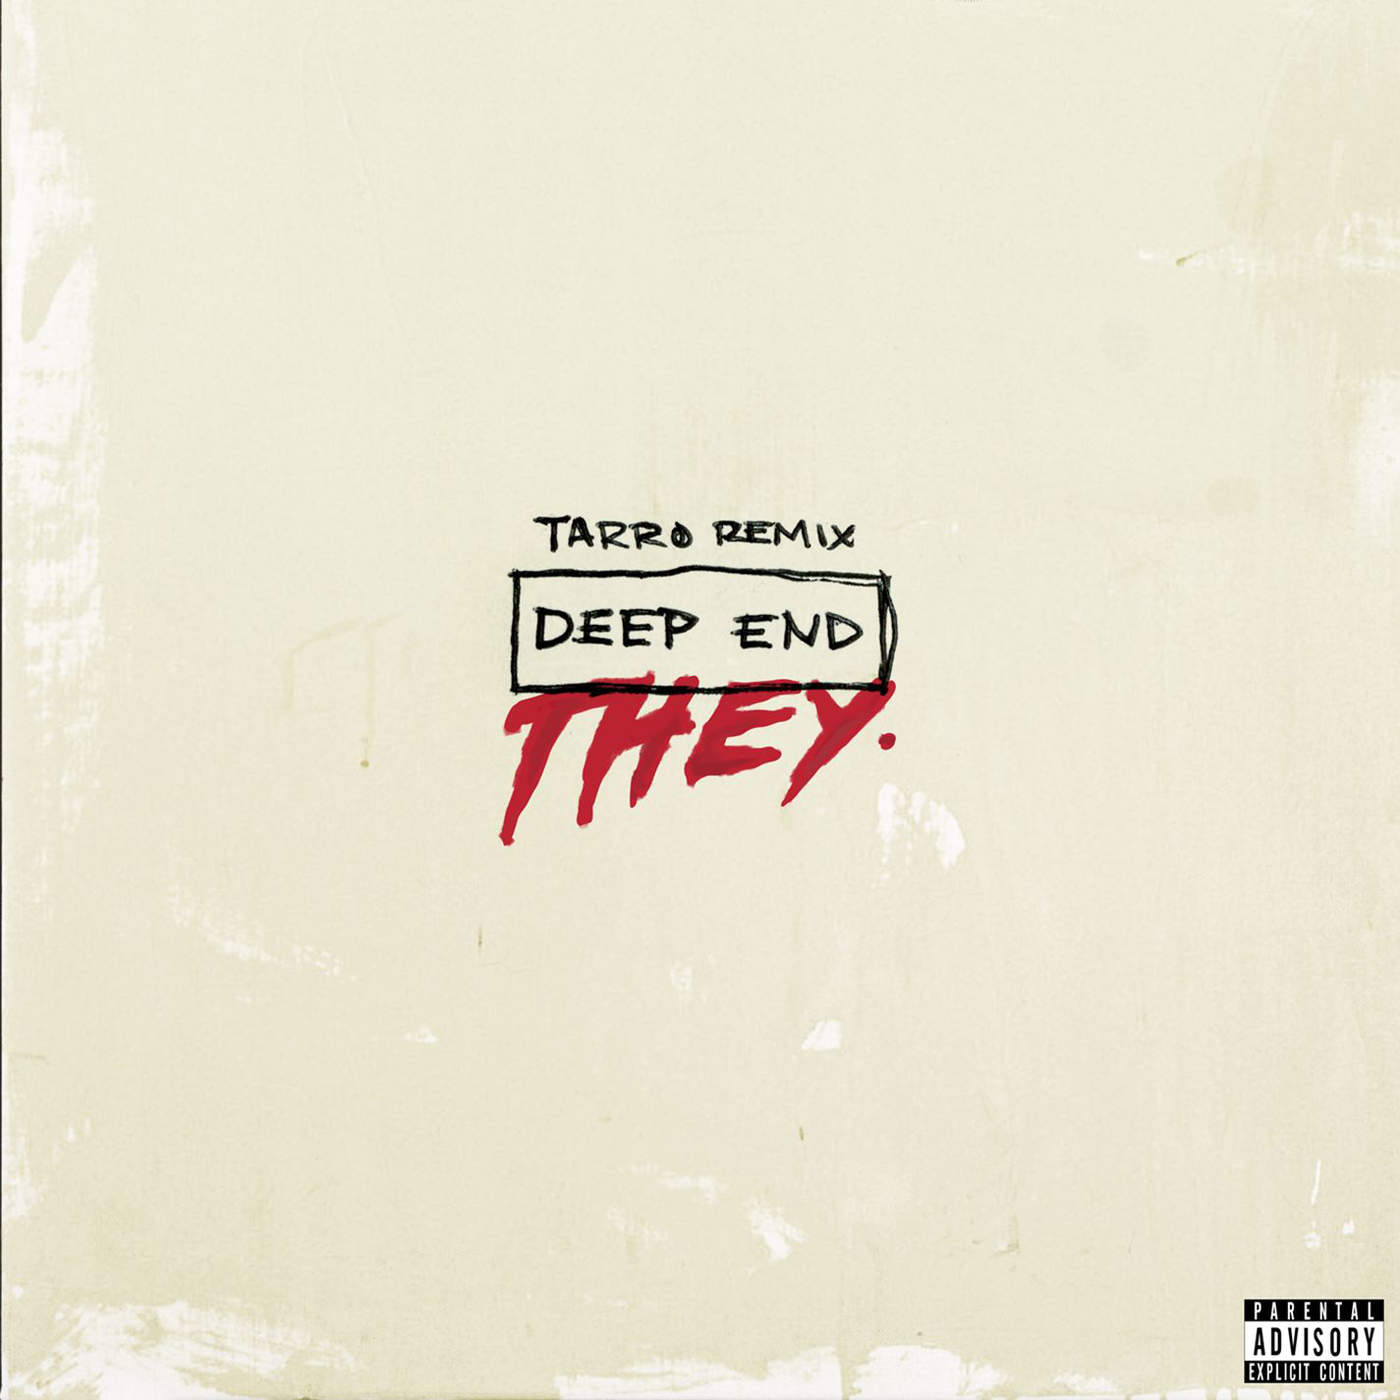 THEY. - Deep End (Tarro Remix) - Single Cover